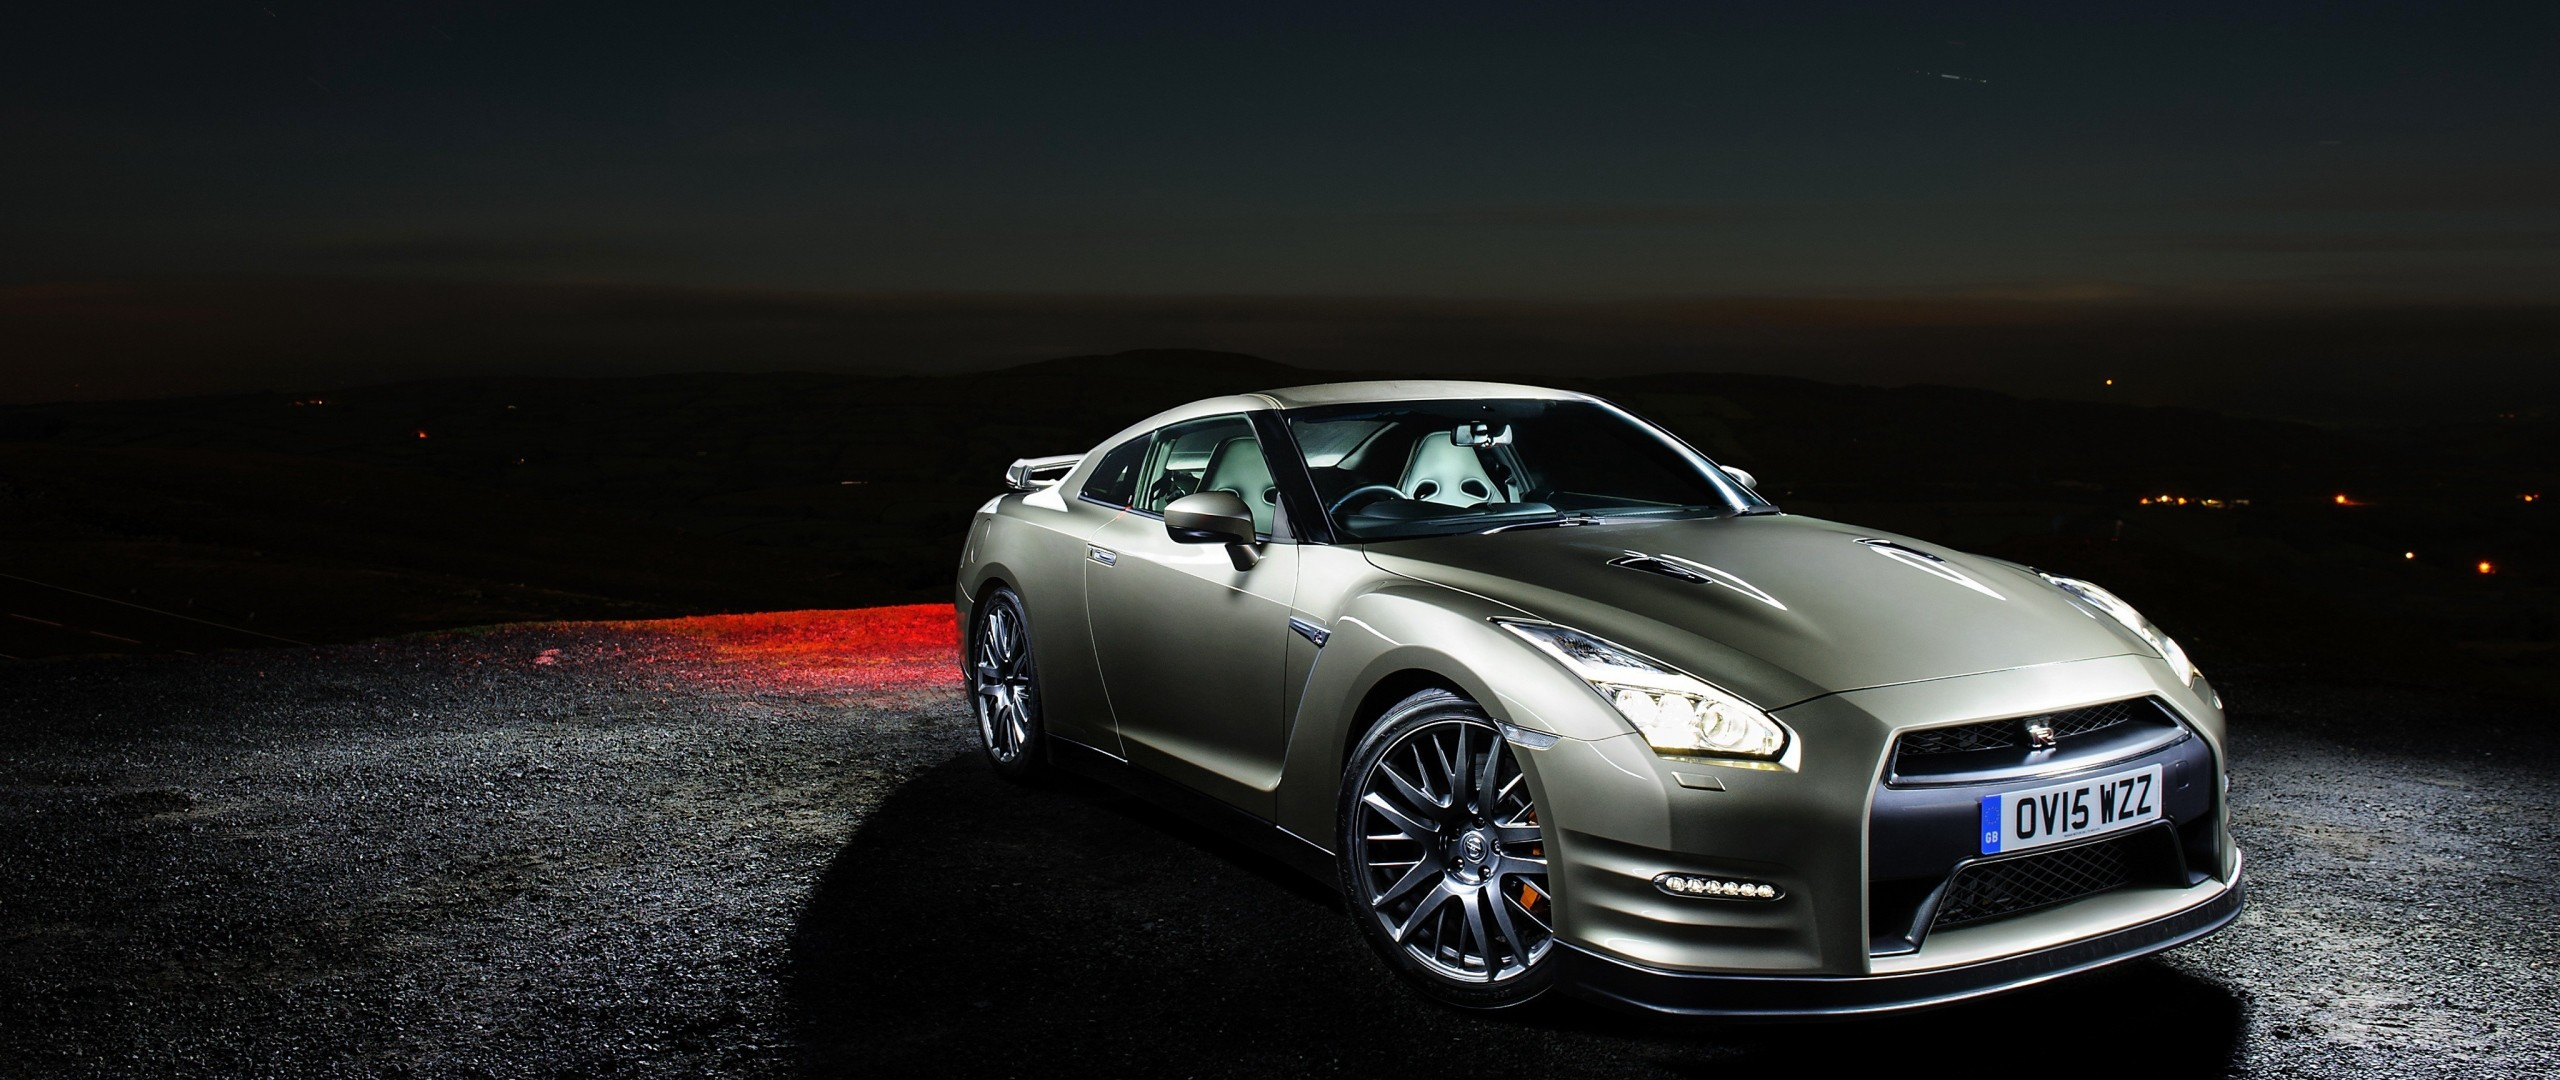 2560x1080 Preview wallpaper nissan, gt-r, side view, night